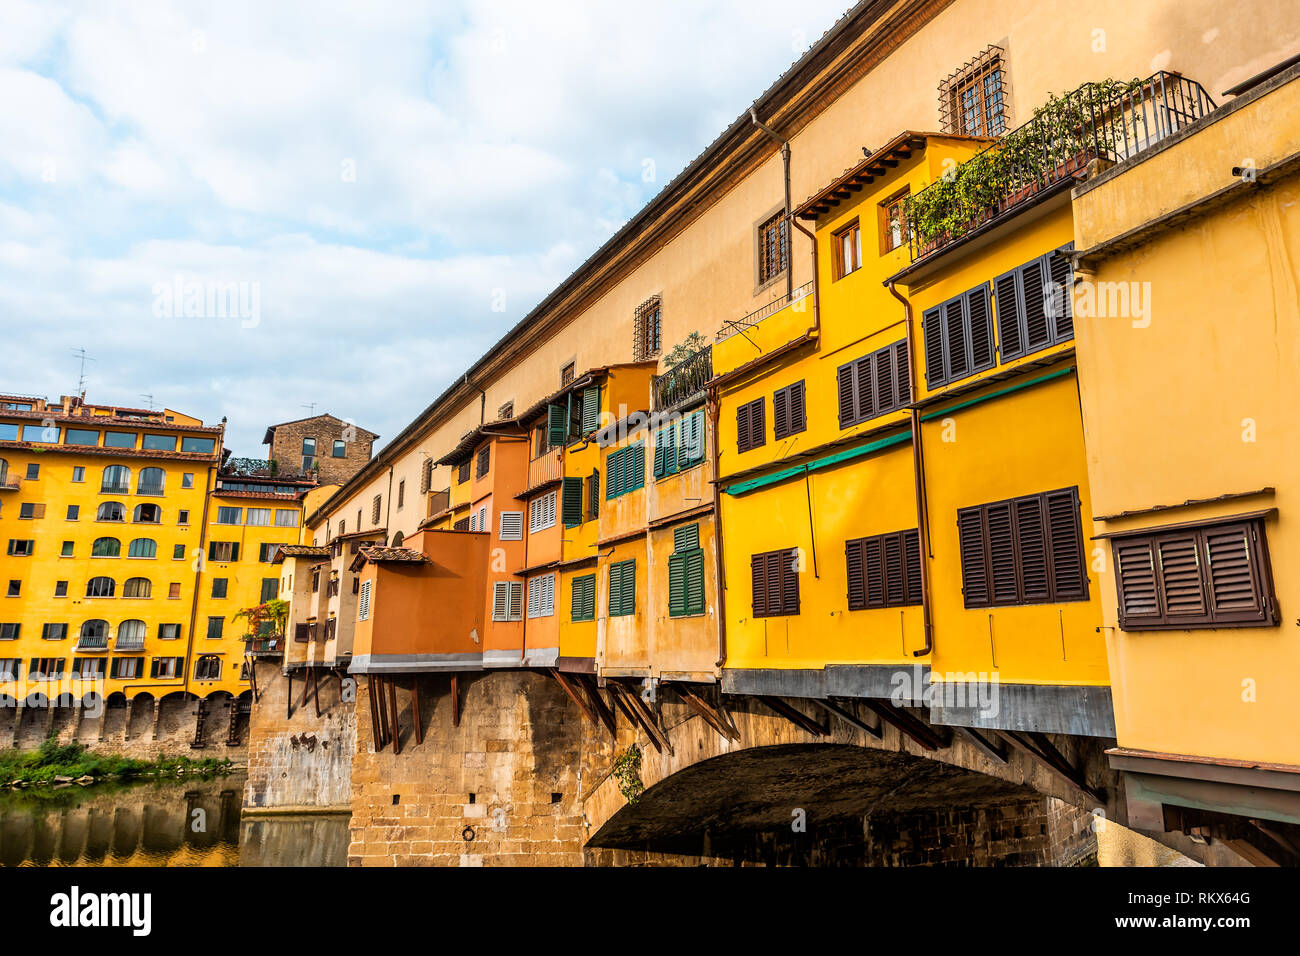 Florence, Italy Firenze orange yellow colorful building closeup on Ponte Vecchio by Arno river during summer morning in Tuscany with nobody vibrant - Stock Image